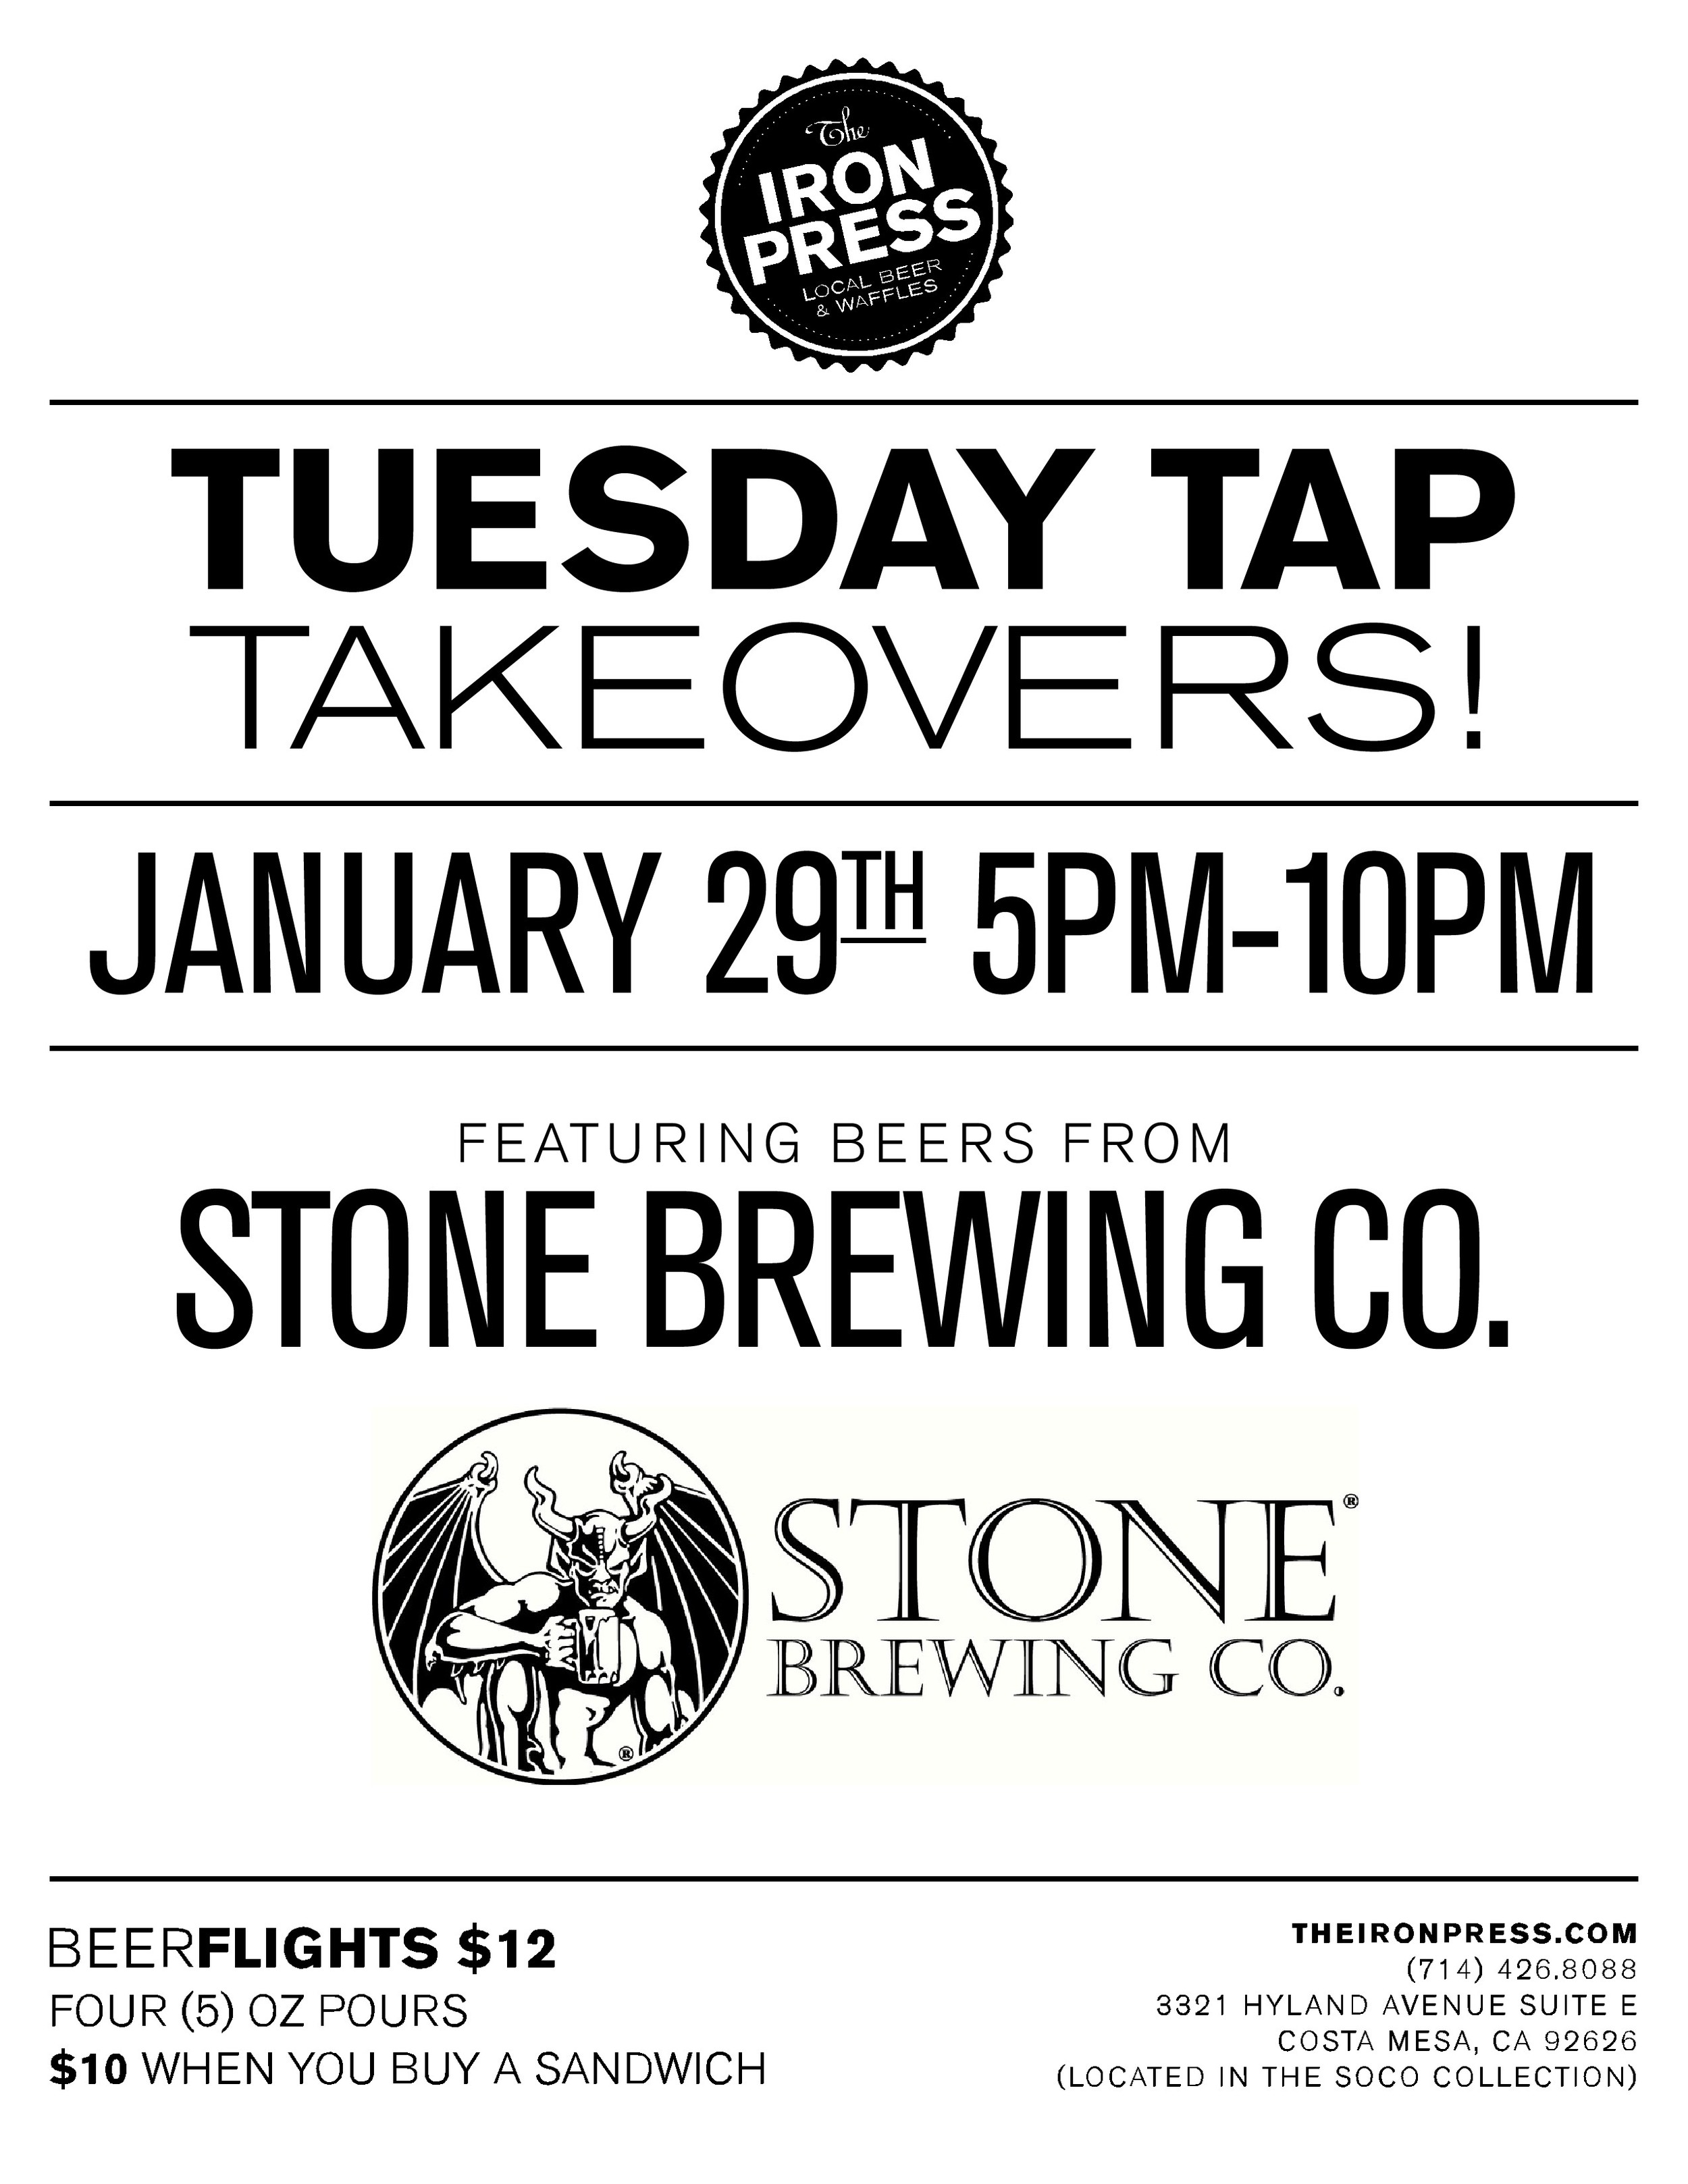 Tuesday Tap Takeovers - Stone Brewing .Co.